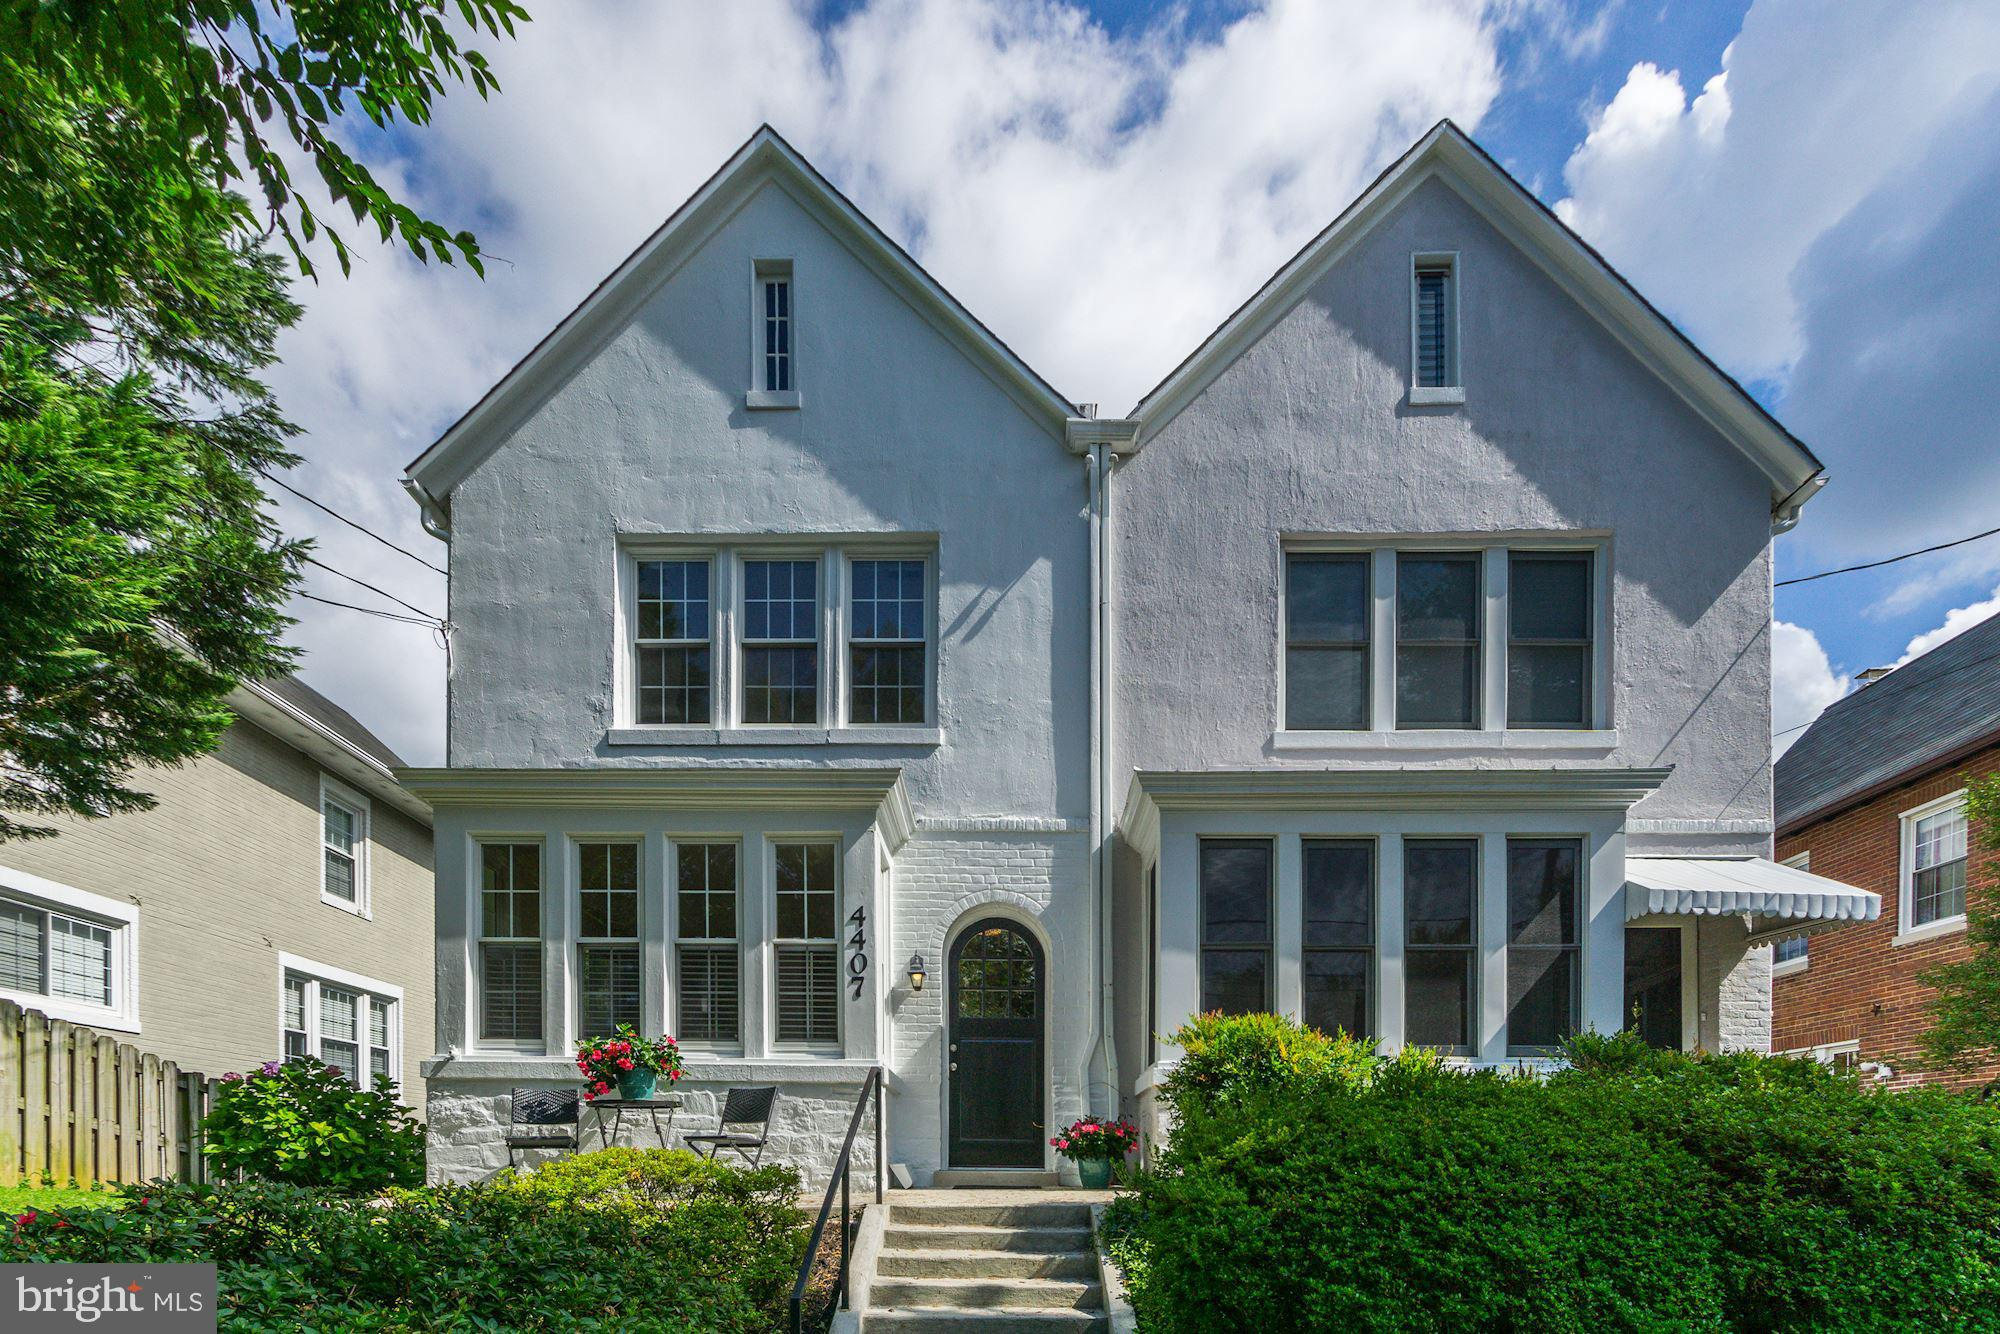 This attractive home offers 4BRs/2.5BAs with a gracious floorplan, gleaming hardwood floors and wall